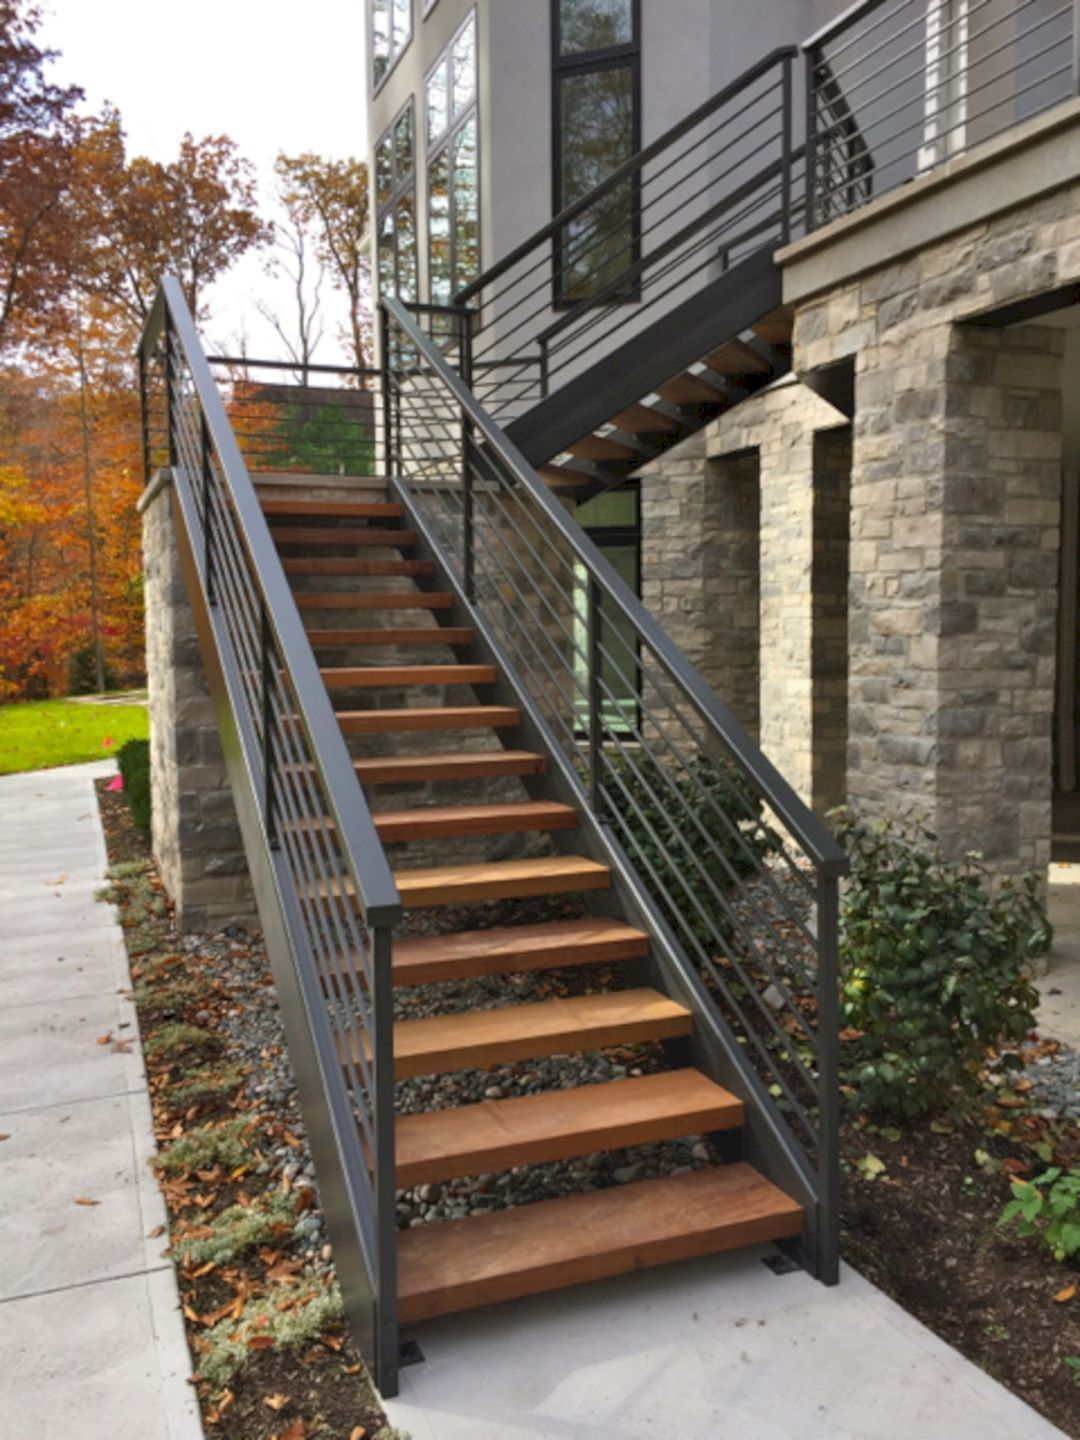 Epic 25 Marvelous Outdoor Stairway Ideas For Creative Home Design | Home Design With Outside Stairs | 2 Story House | Single Floor | Unique | Second Floor | Exterior